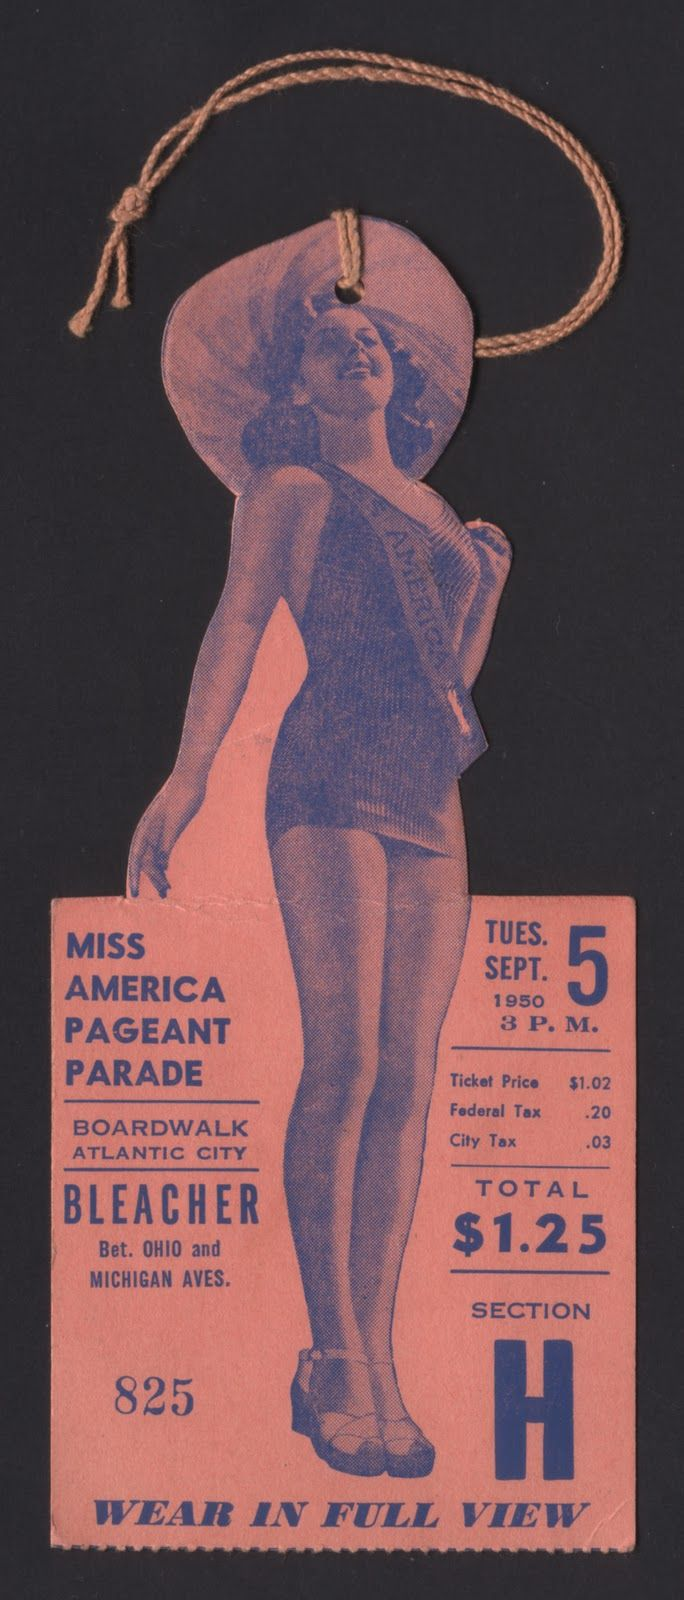 Miss America Pageant Parade